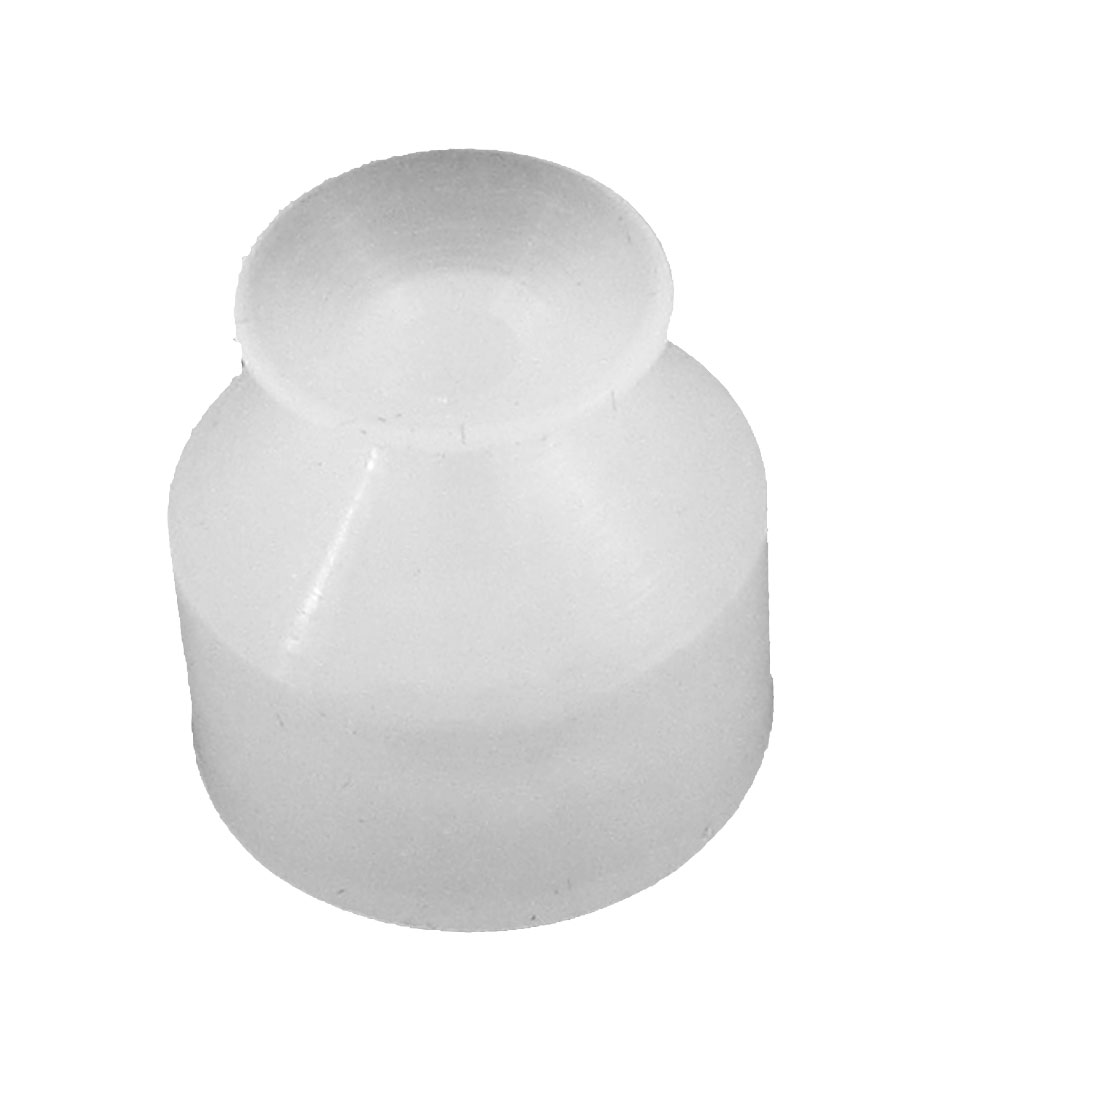 10mmx16mm Oil Resistance Silicone Vacuum Suction Cup Suckers Spare Part